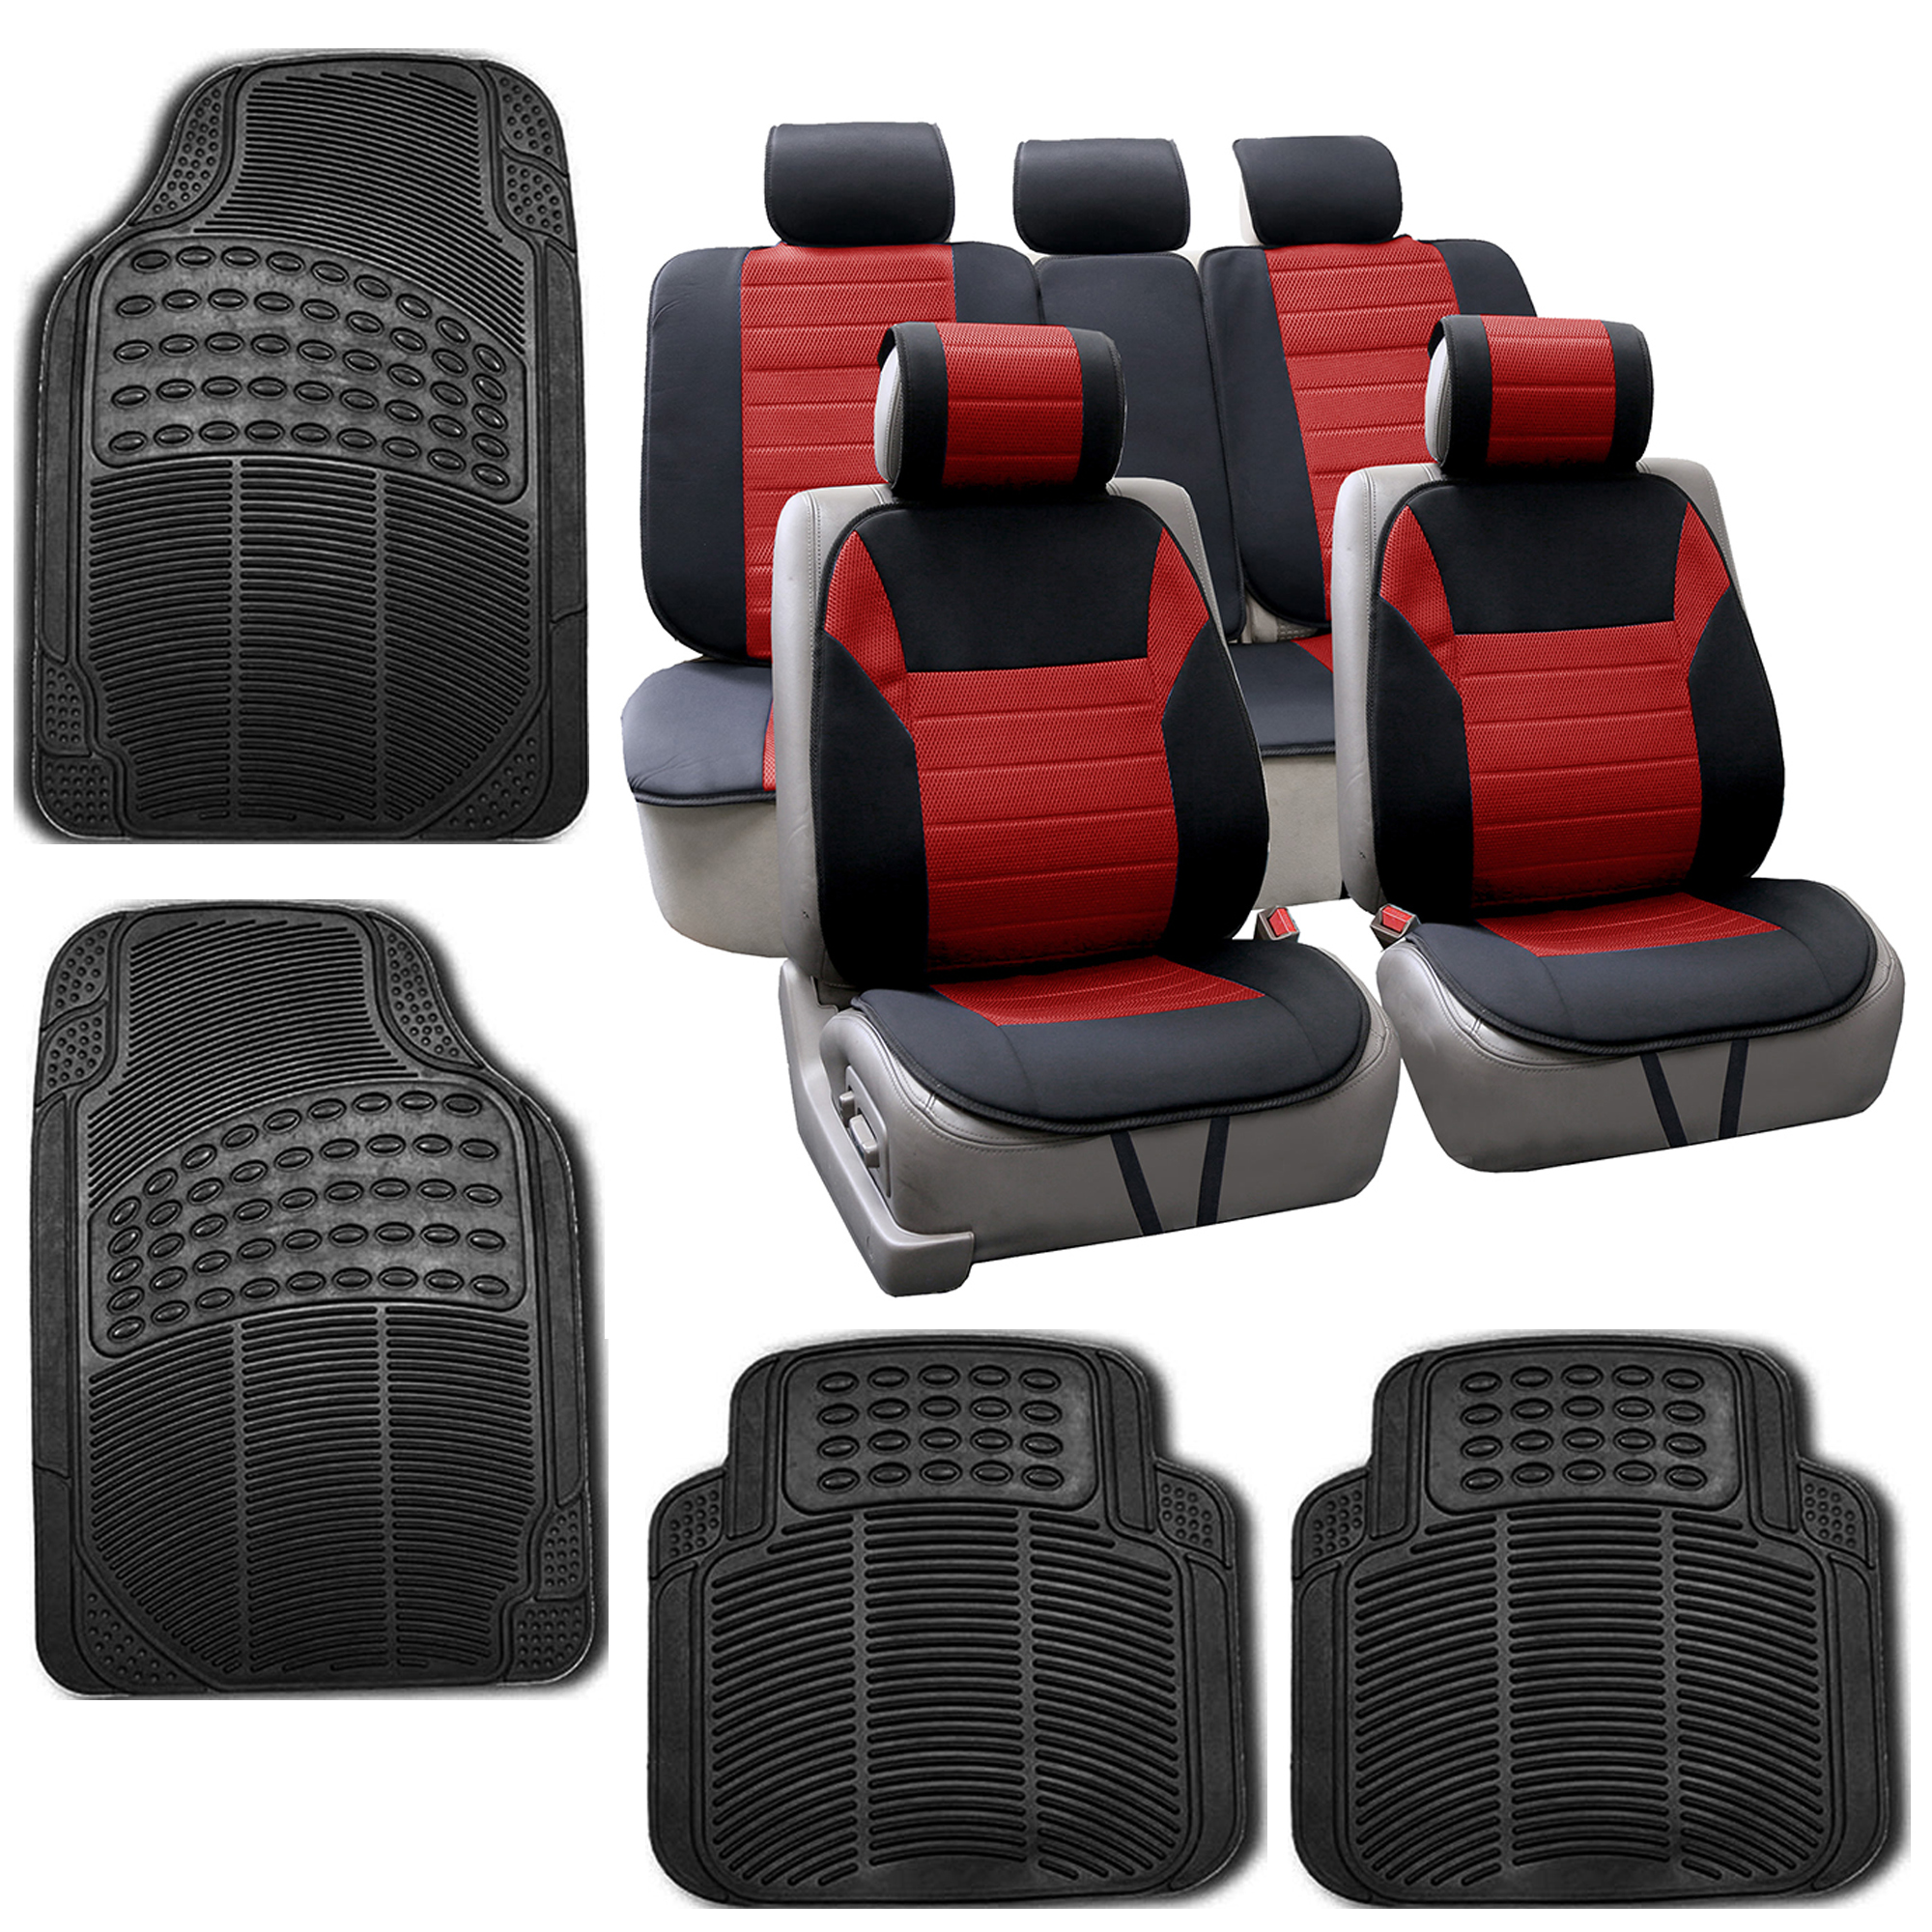 car seat covers comfy car seat cushion pads rubber floor. Black Bedroom Furniture Sets. Home Design Ideas